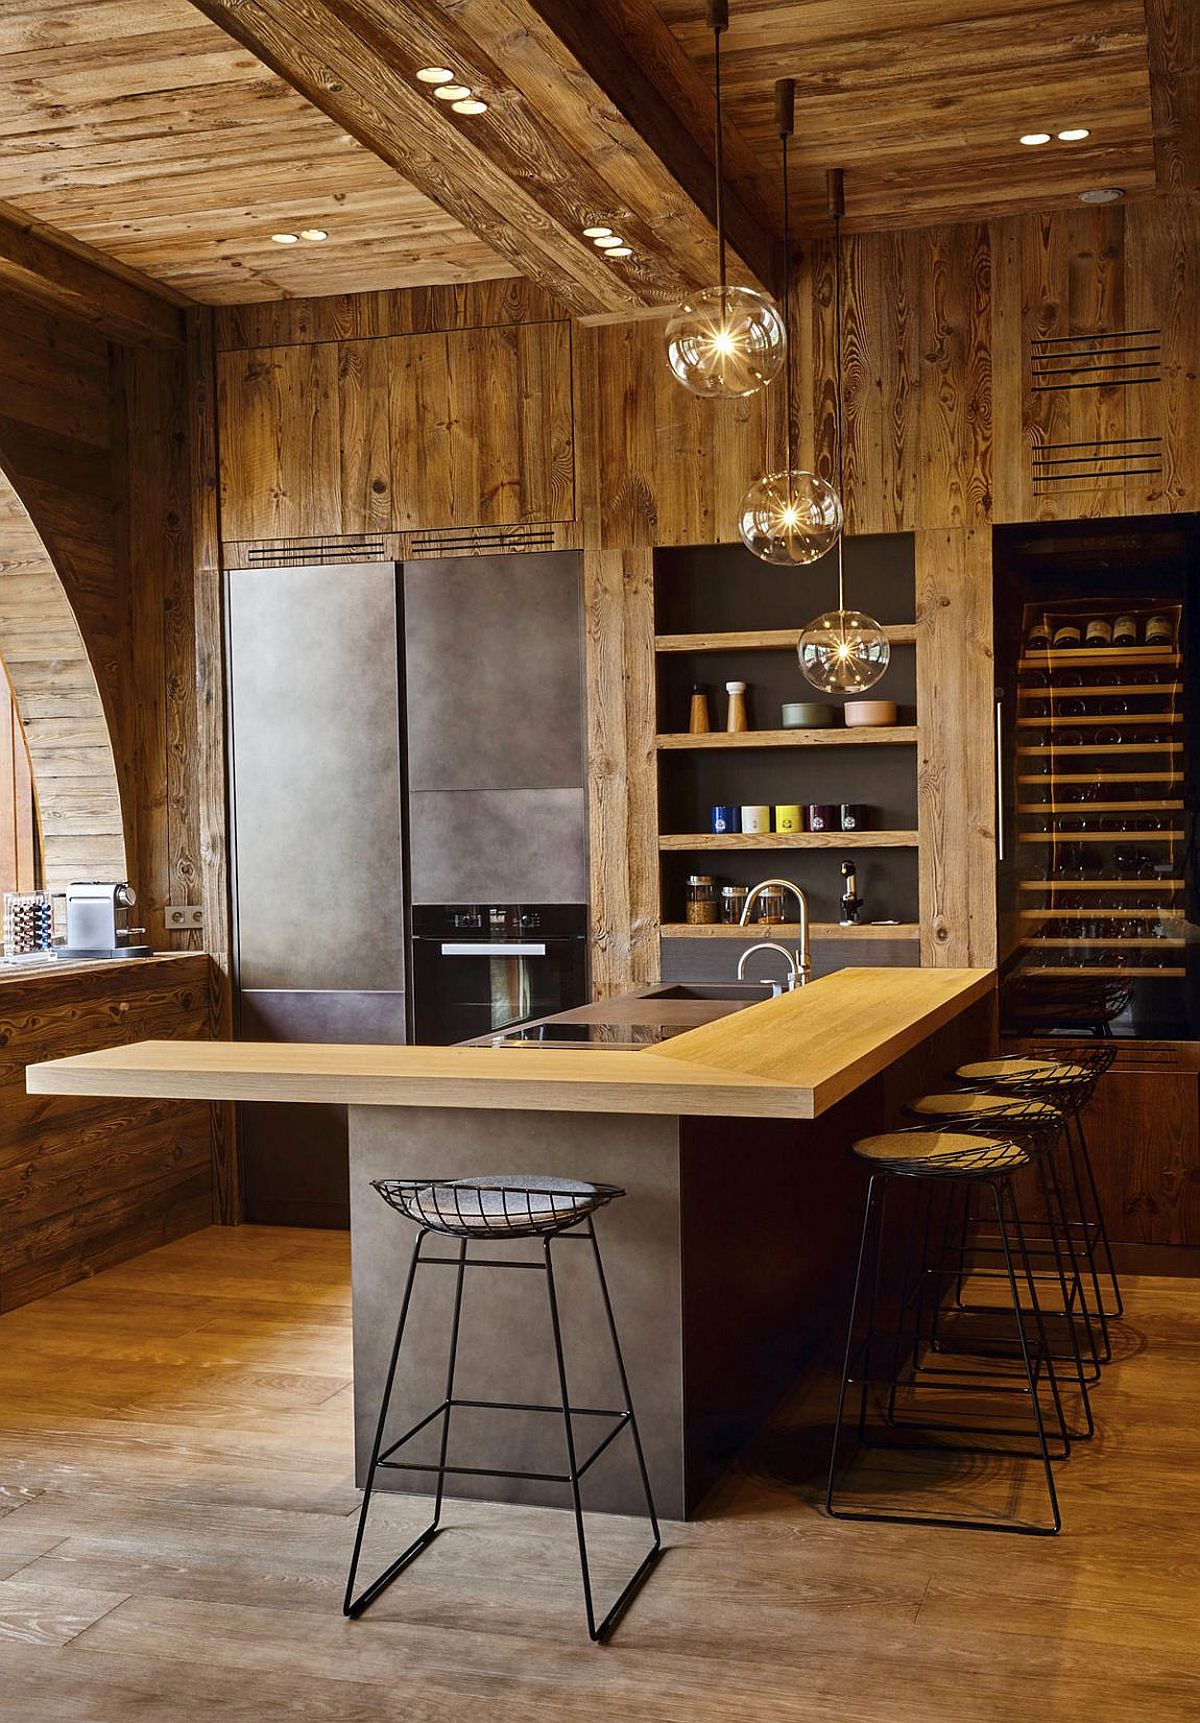 Recessed lighting coupled with sparkling pendants for the rustic modern kitchen